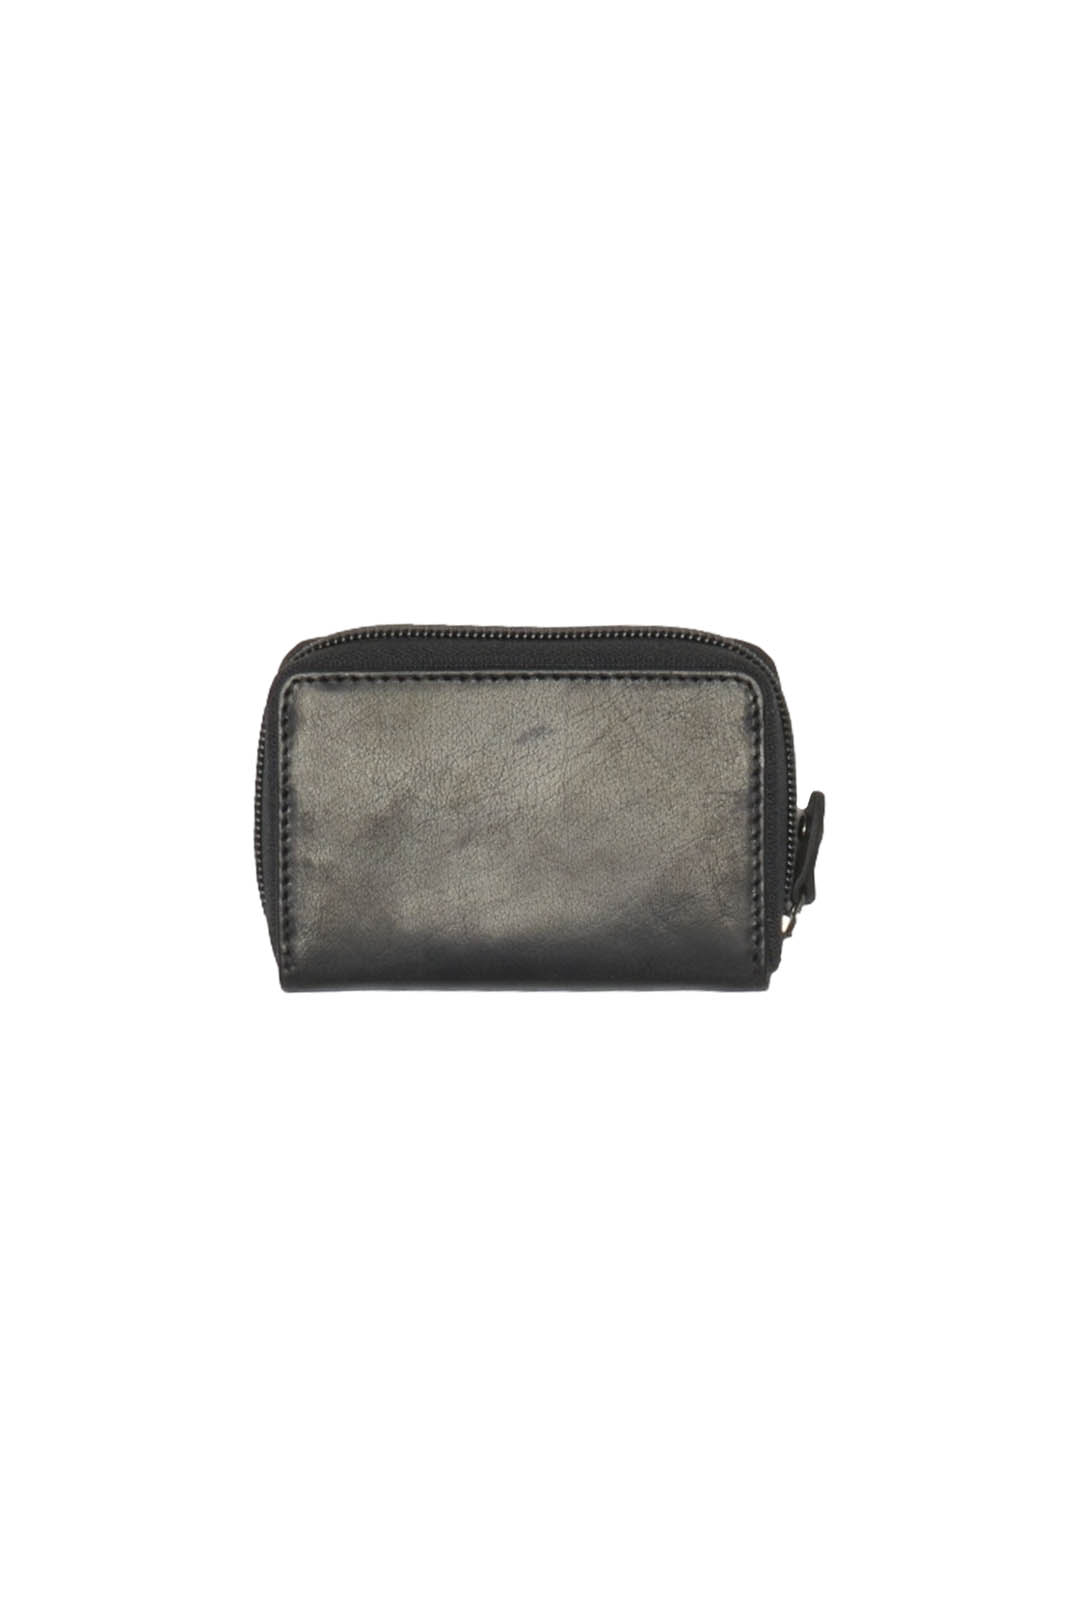 Gusseted leather card holder             2